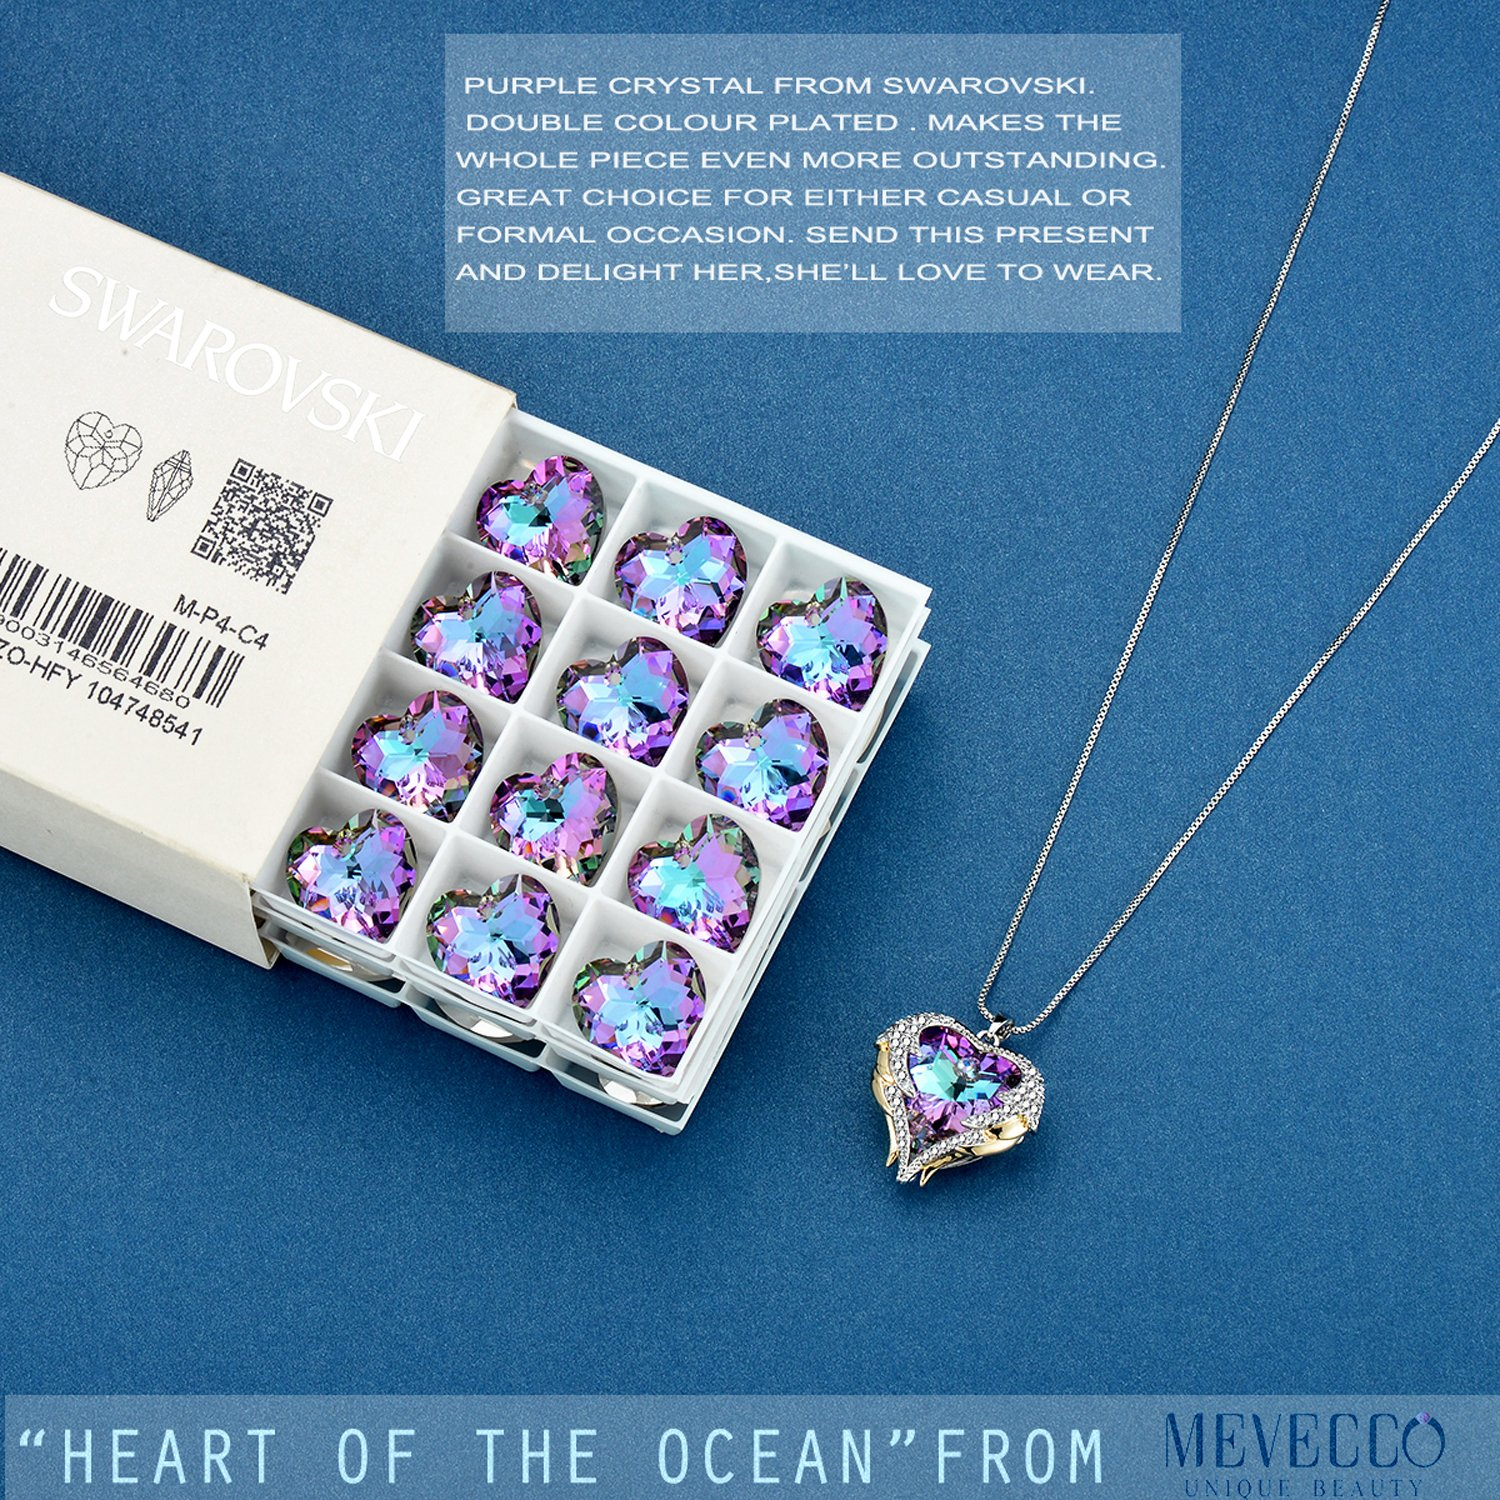 Mevecco ''Heart Of the Ocean'' Heart Pendant Necklace Made with Swarovski Crystals-NK10-Vol Light by Mevecco (Image #6)